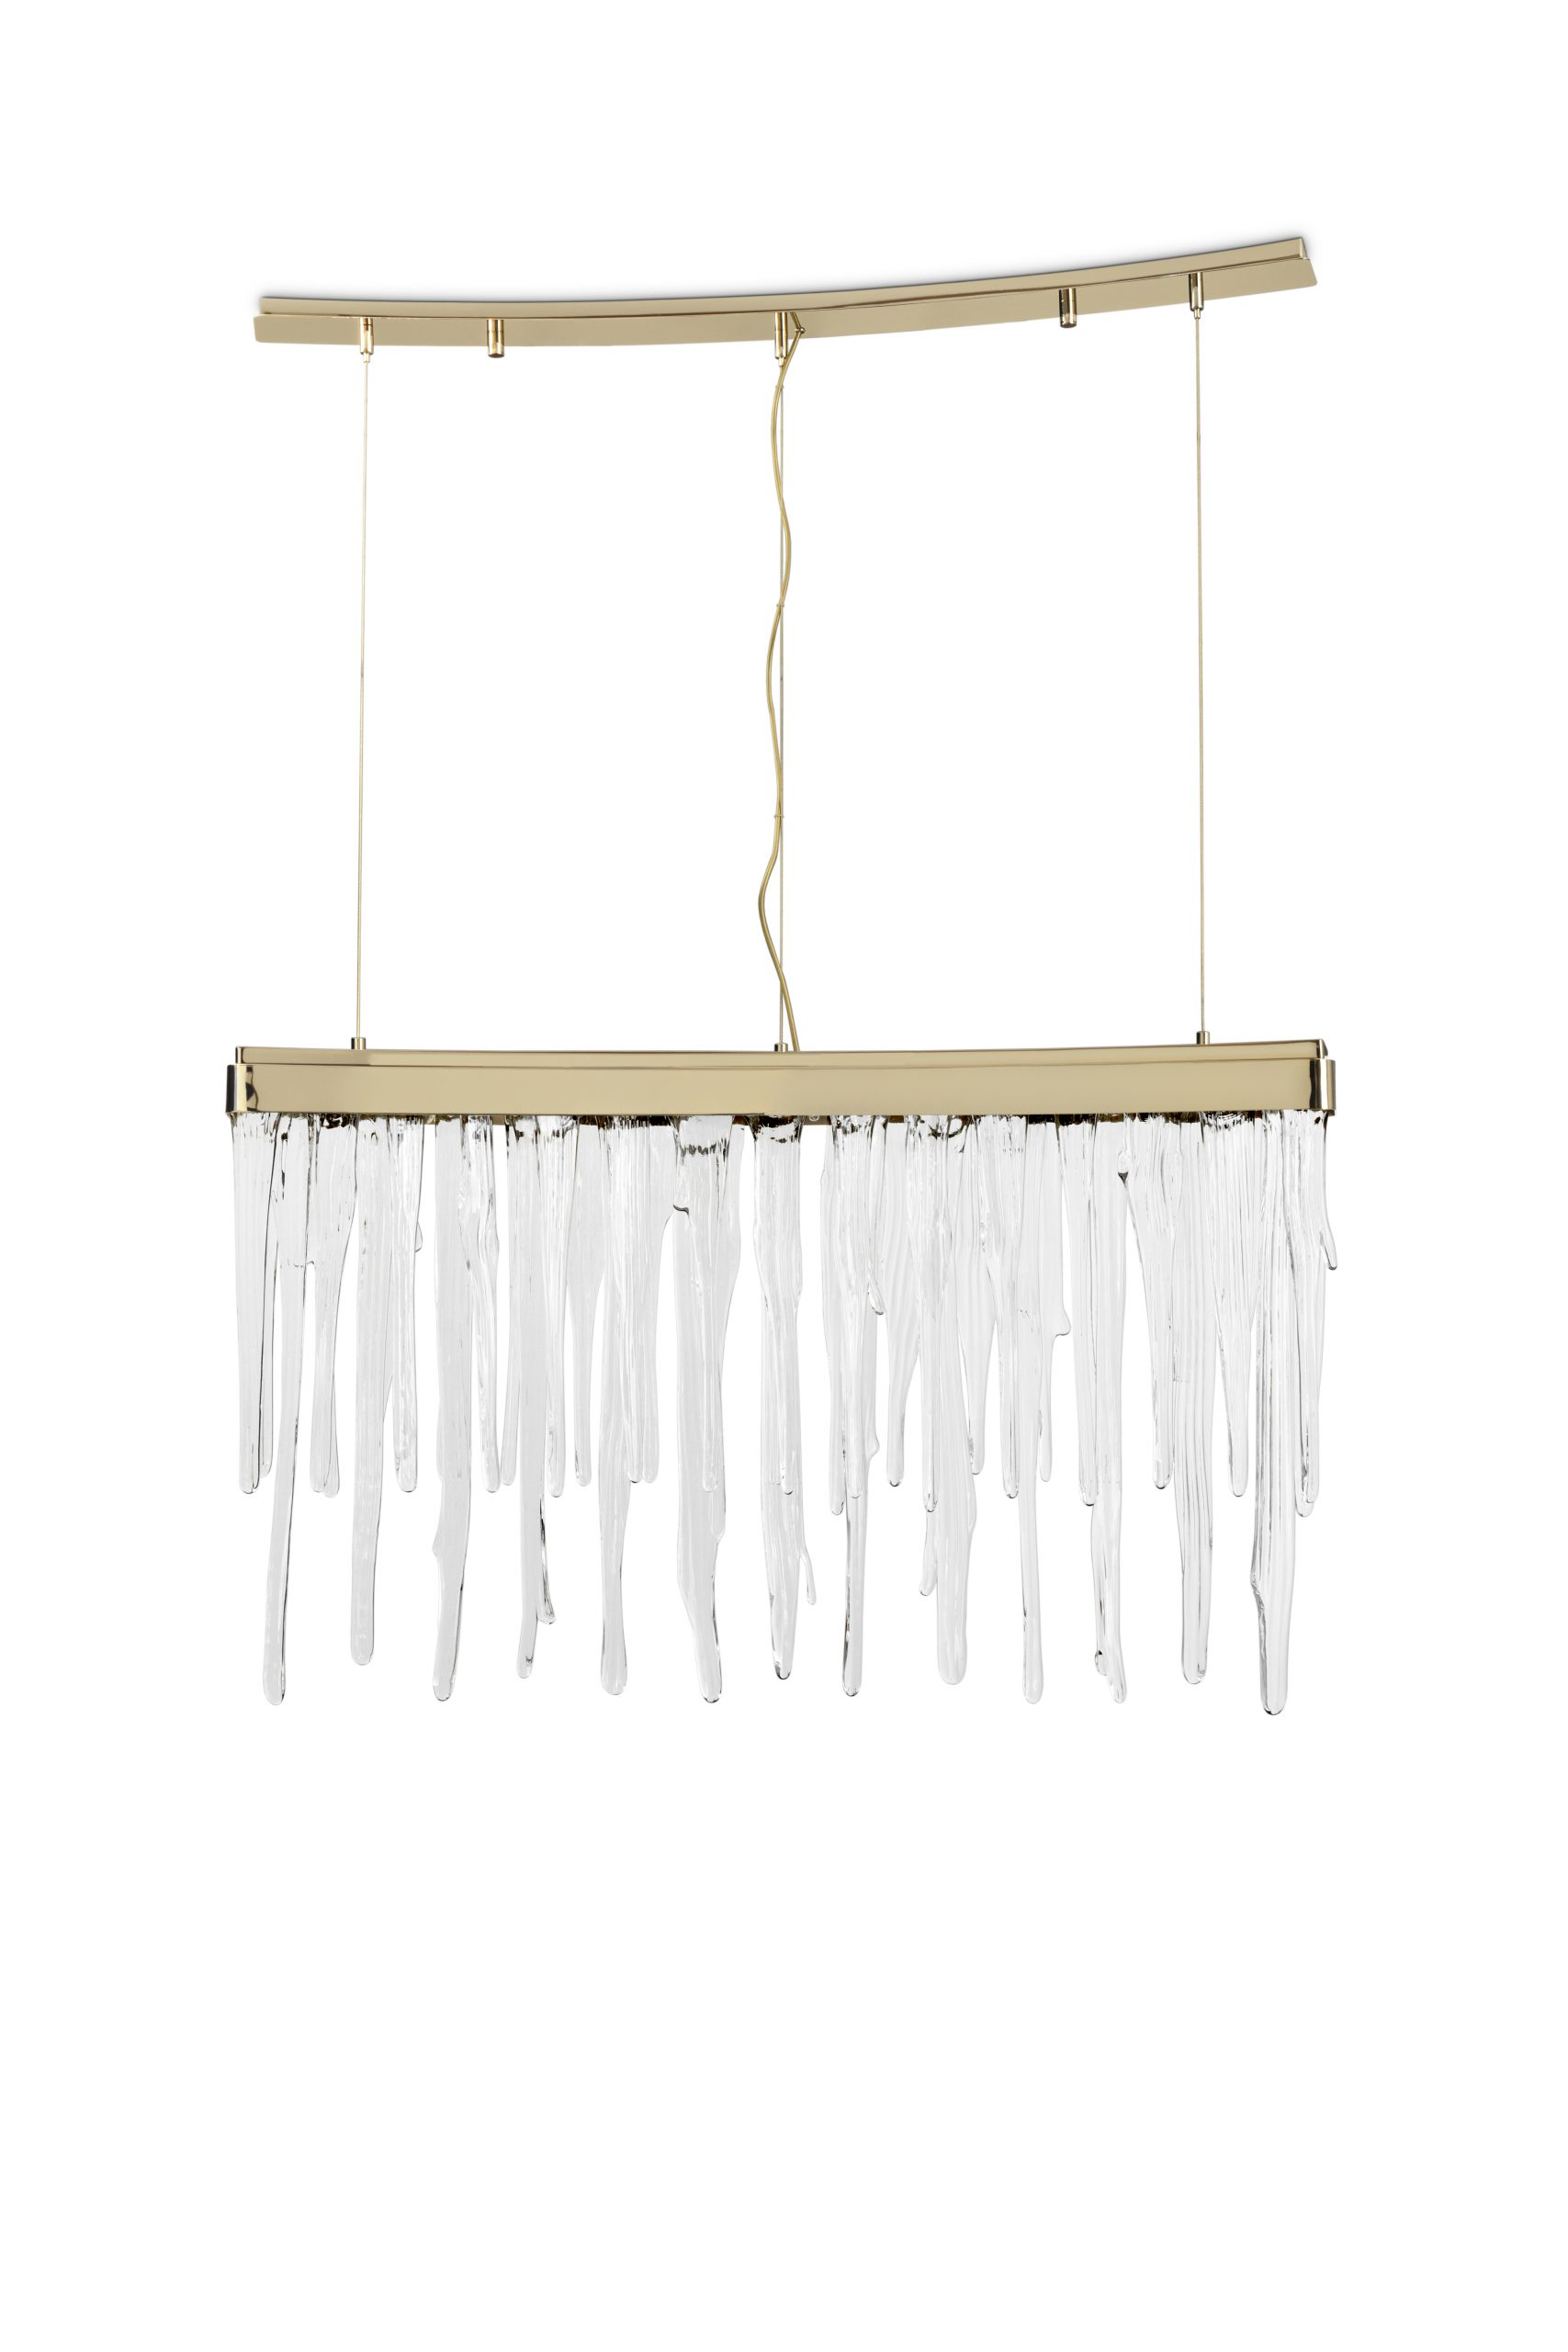 Product Of the week: Babel II suspension